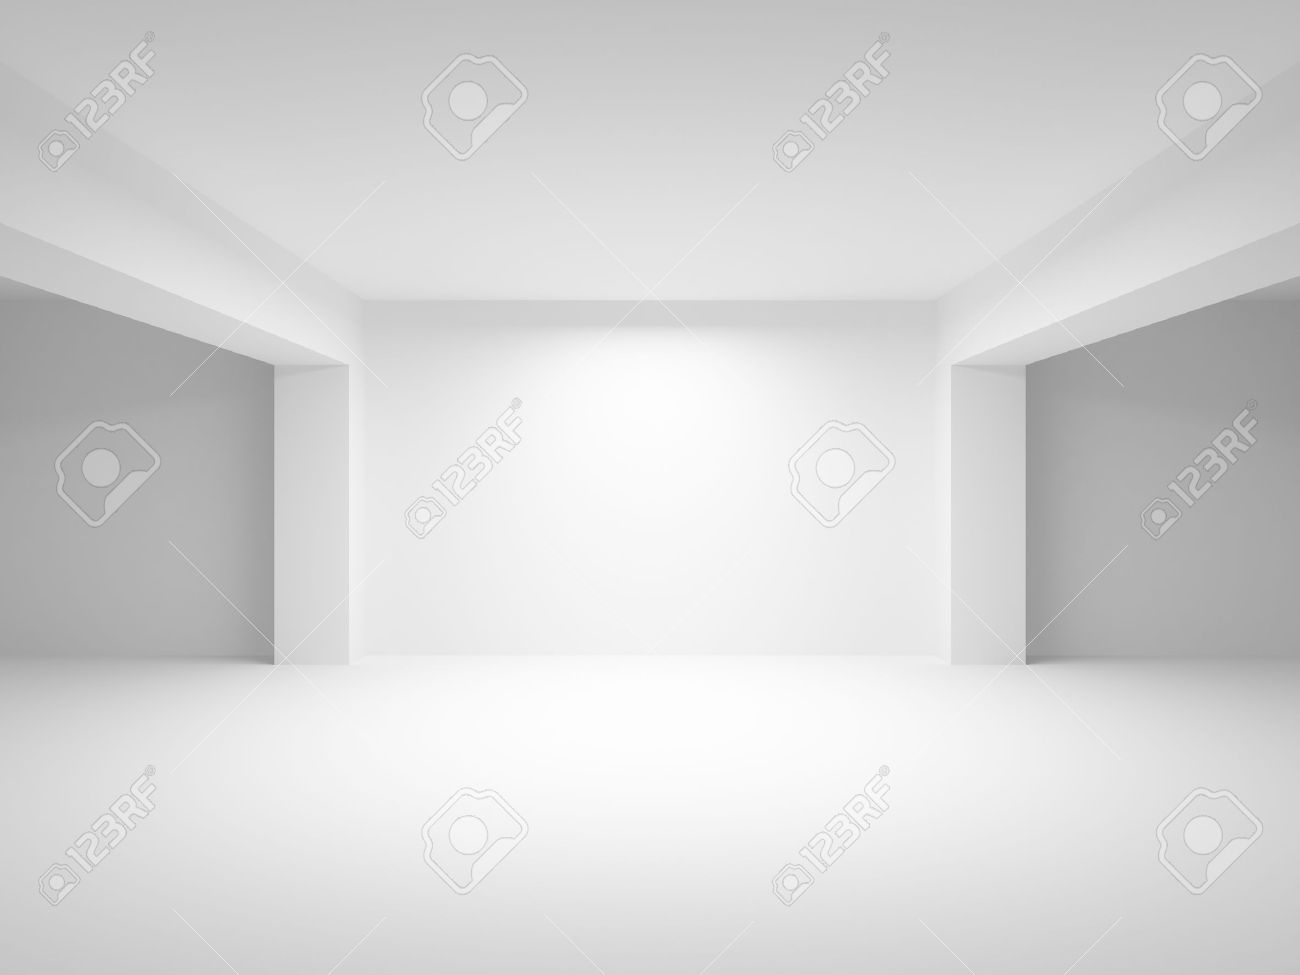 abstract white empty interior perspective background 3d illustration stock illustration 23946627